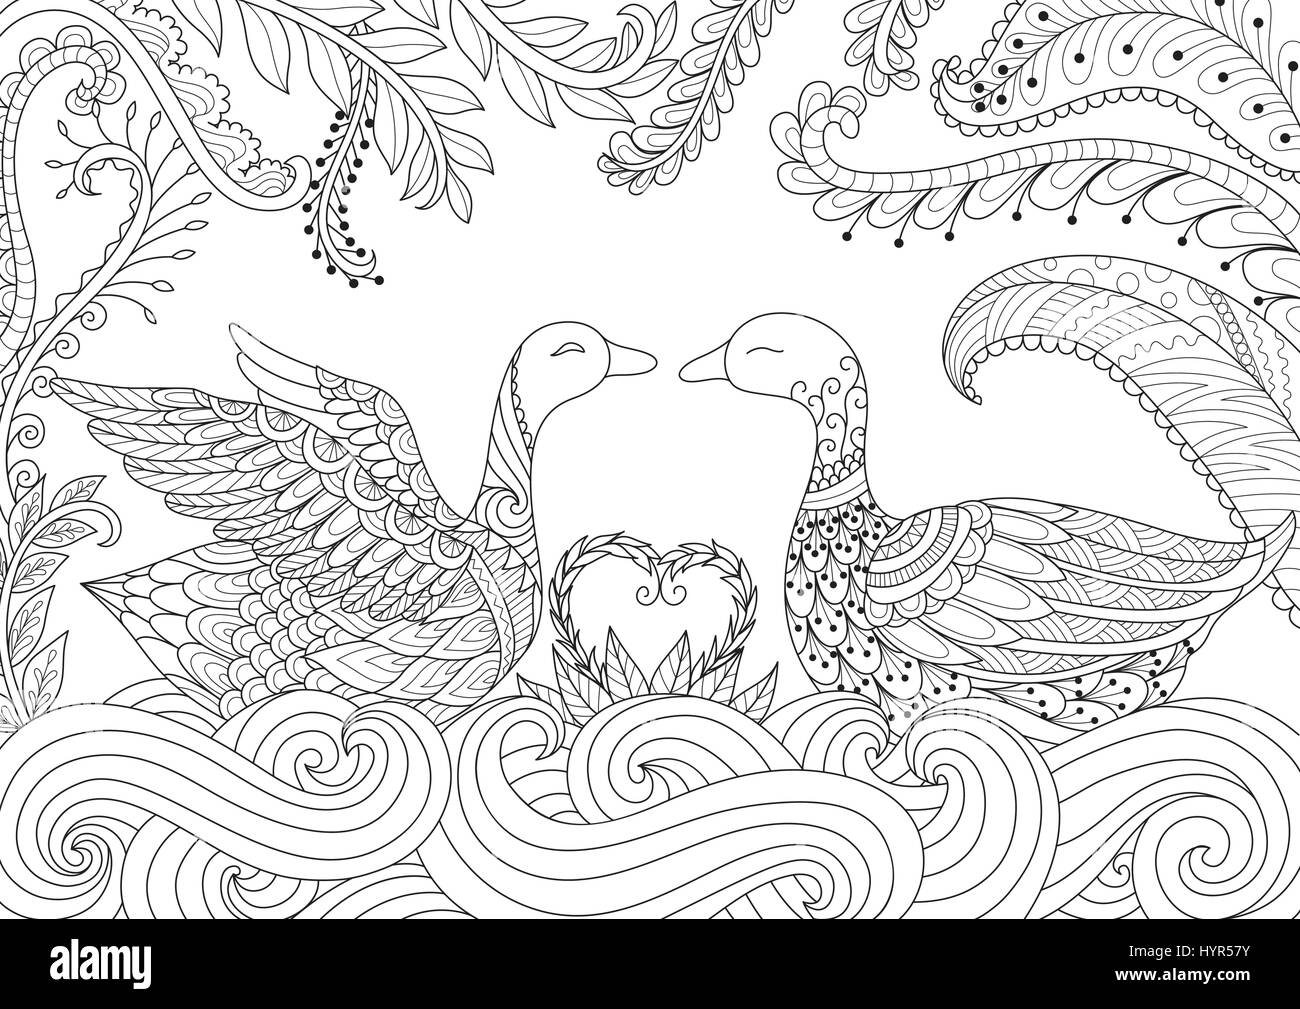 Dragon Flying Above Russian Cathedral Design For Adult Coloring Book Page Vector Illustration